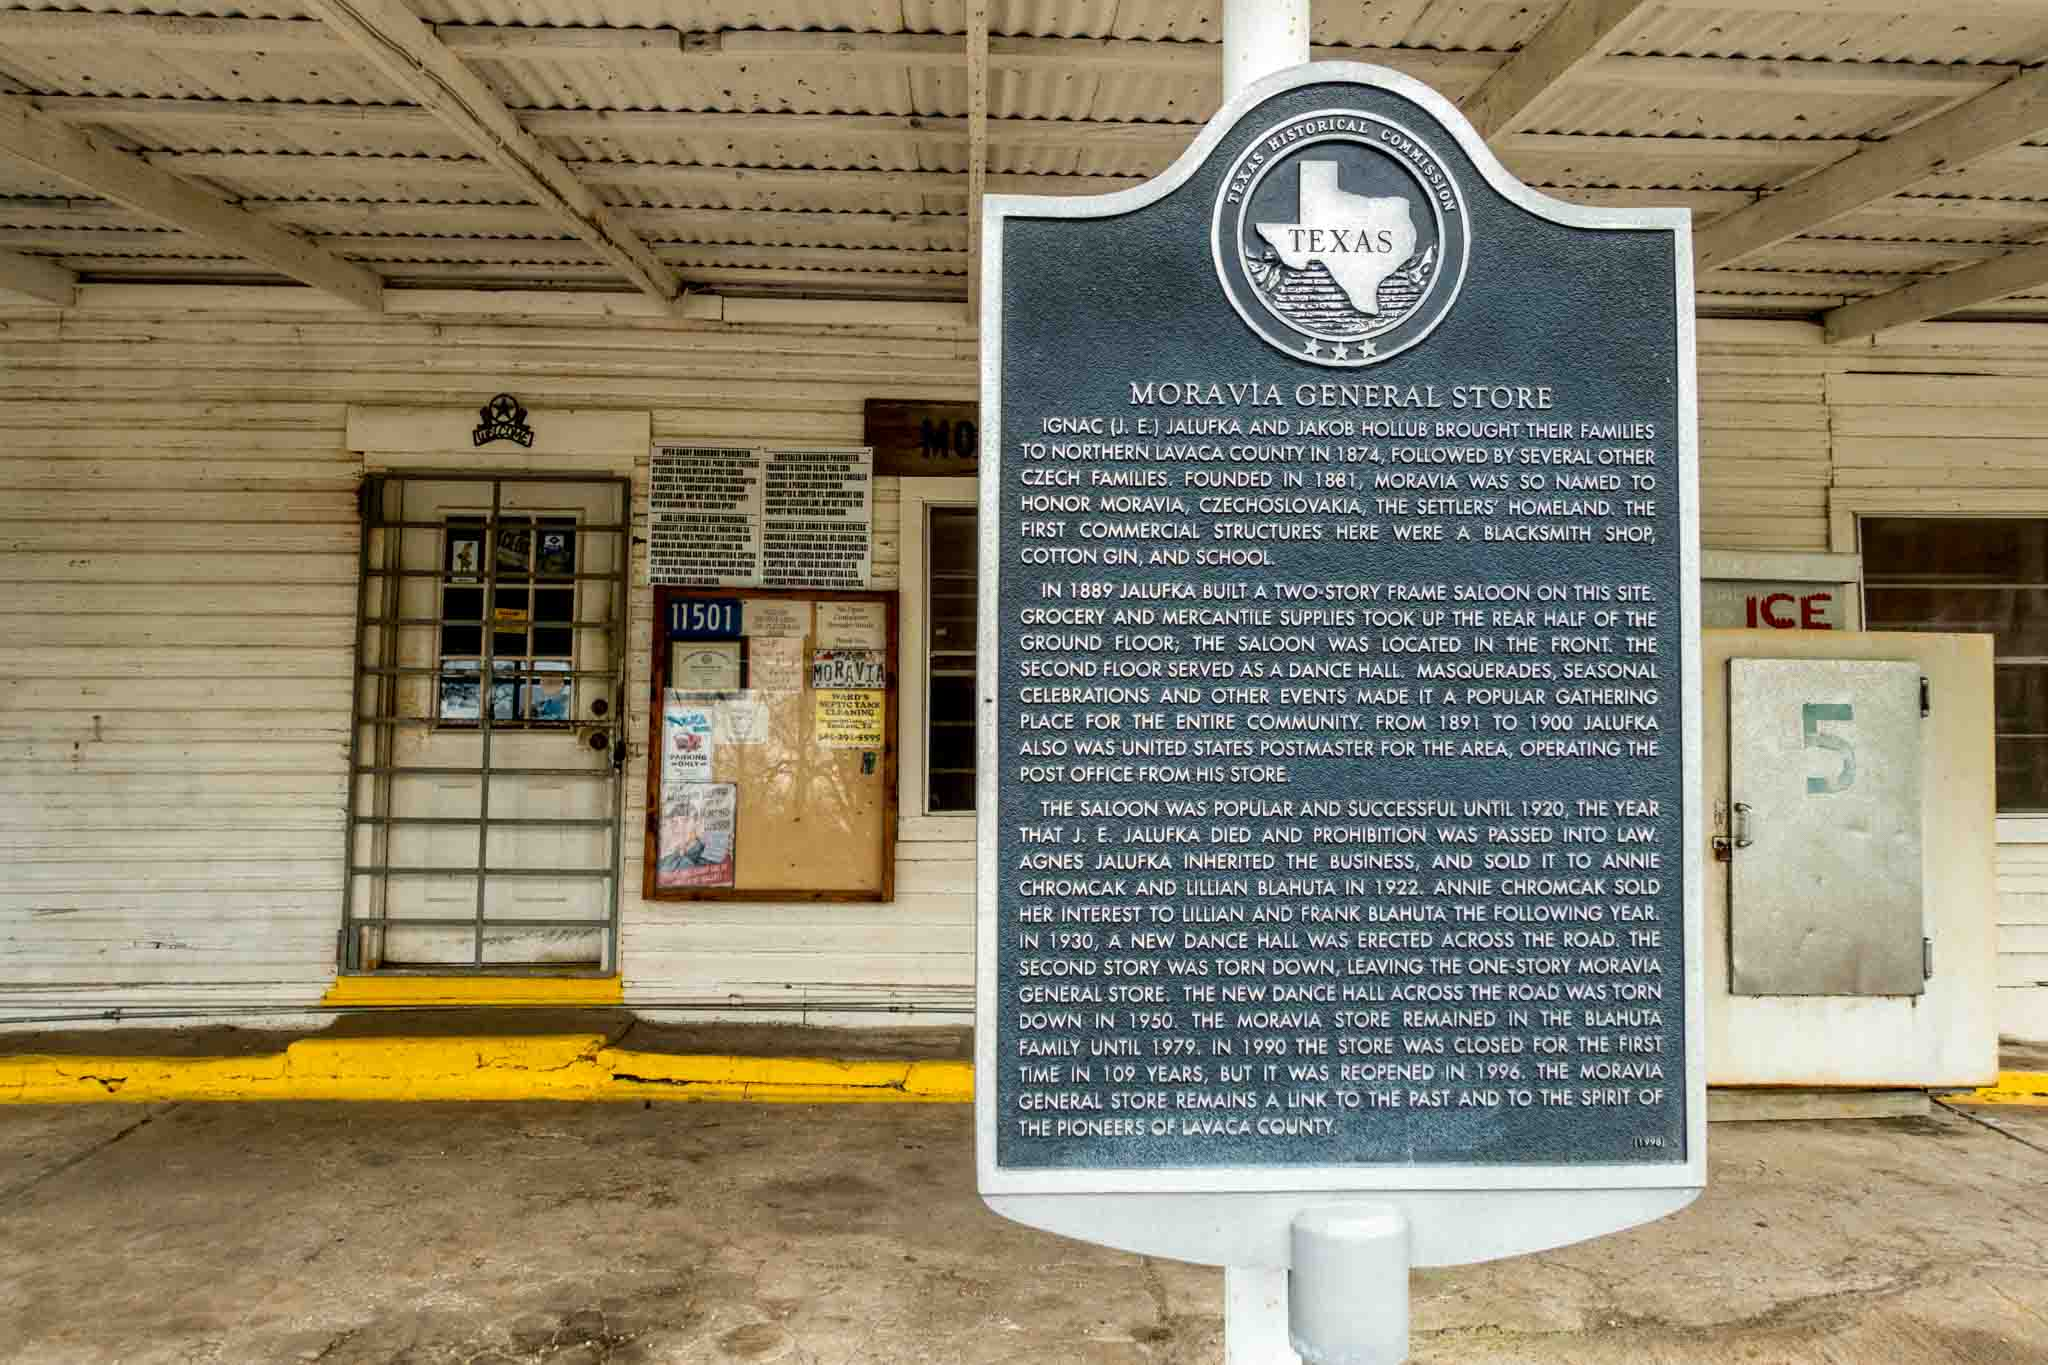 Historical marker for the Moravia general store outside the store